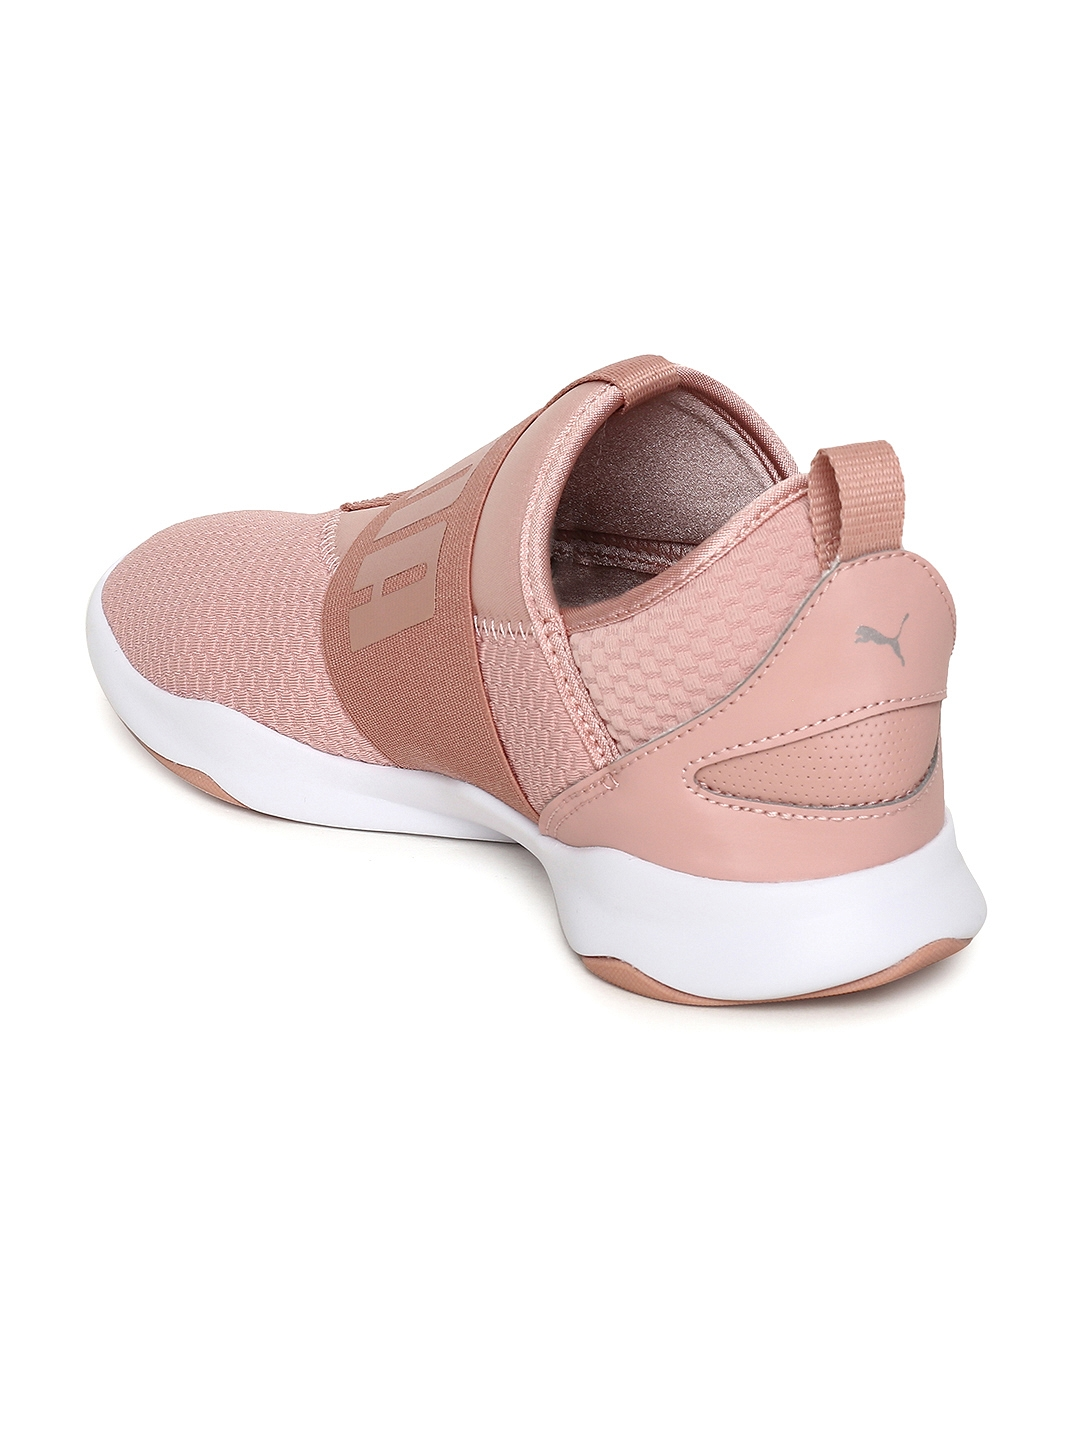 1d5b4db744d7 Buy Puma Dare Wns EP - Casual Shoes for Women 2429554